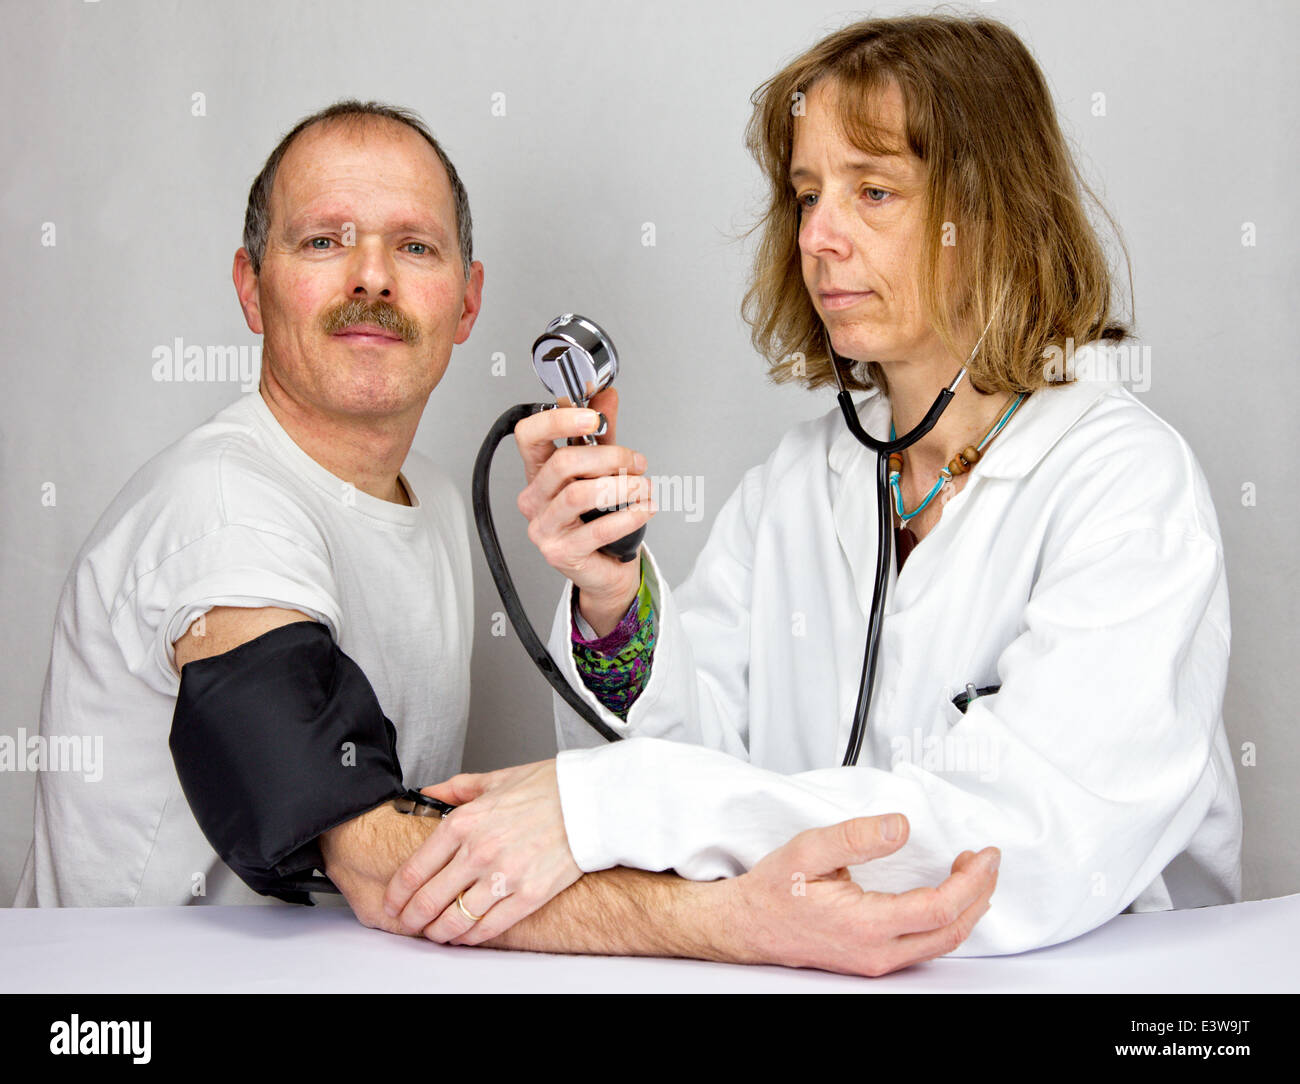 Doctor checks blood pressure of a patient - Stock Image